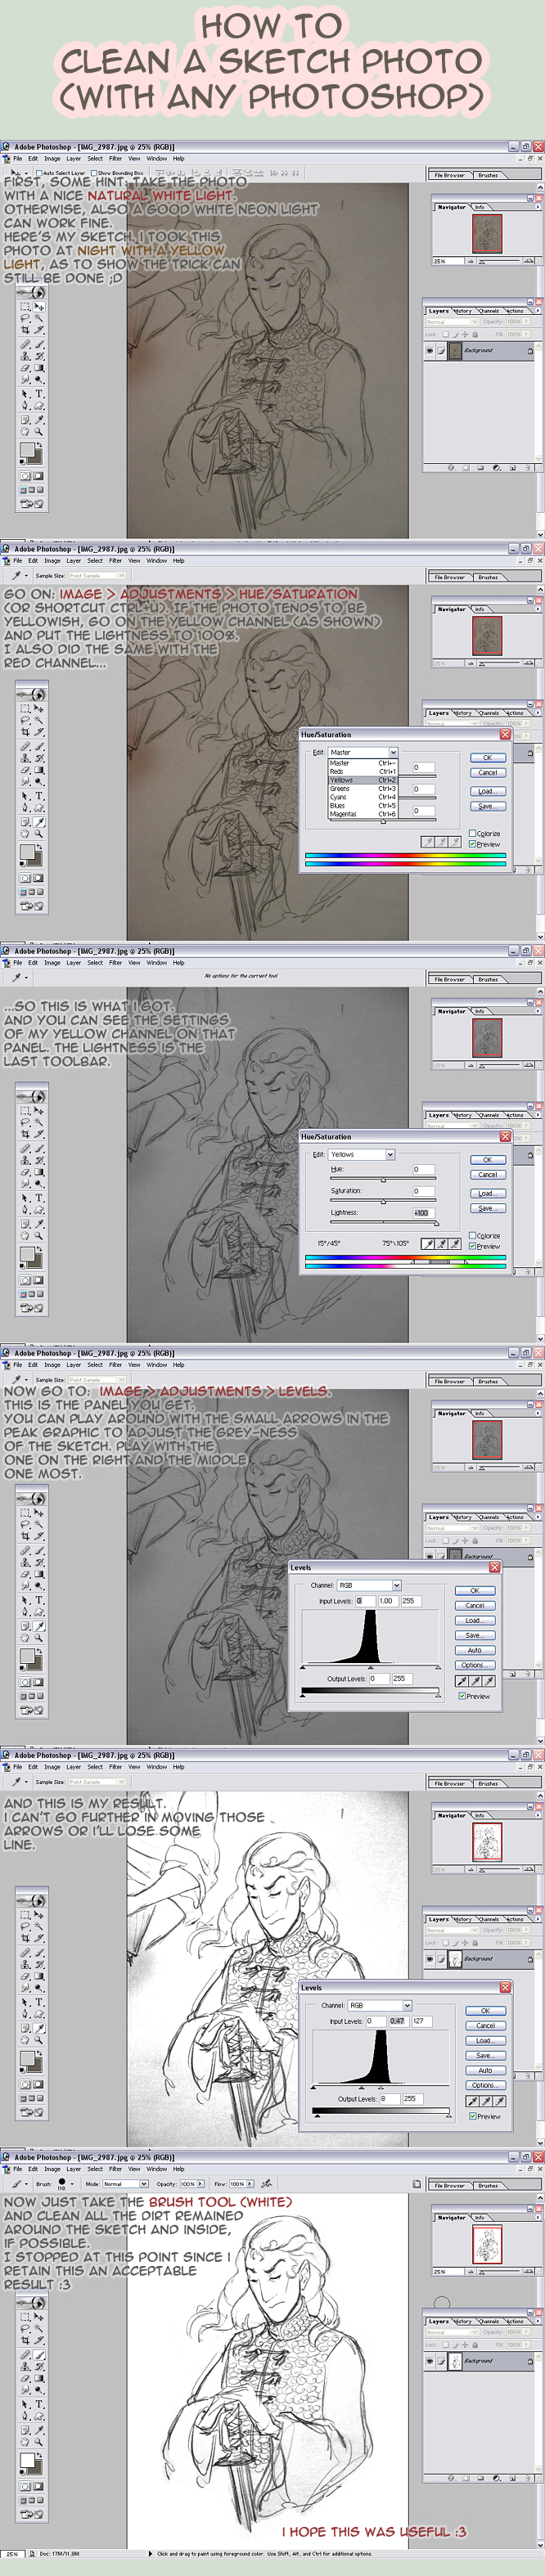 how to clean photos - tutorial by KuroSy